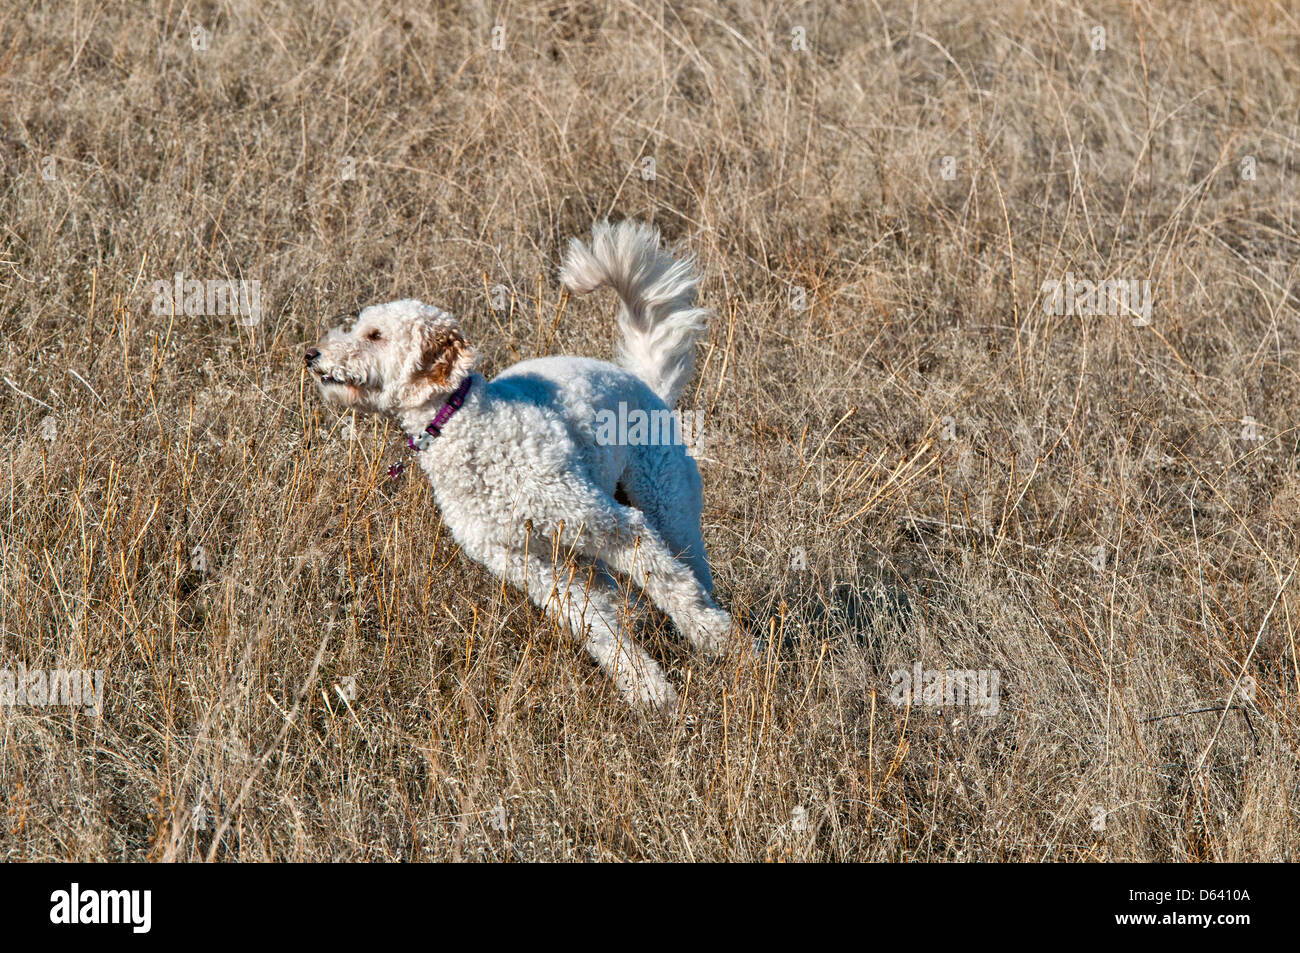 Goldendoodle (cross between a golden retriever and a standard poodle) running - Stock Image